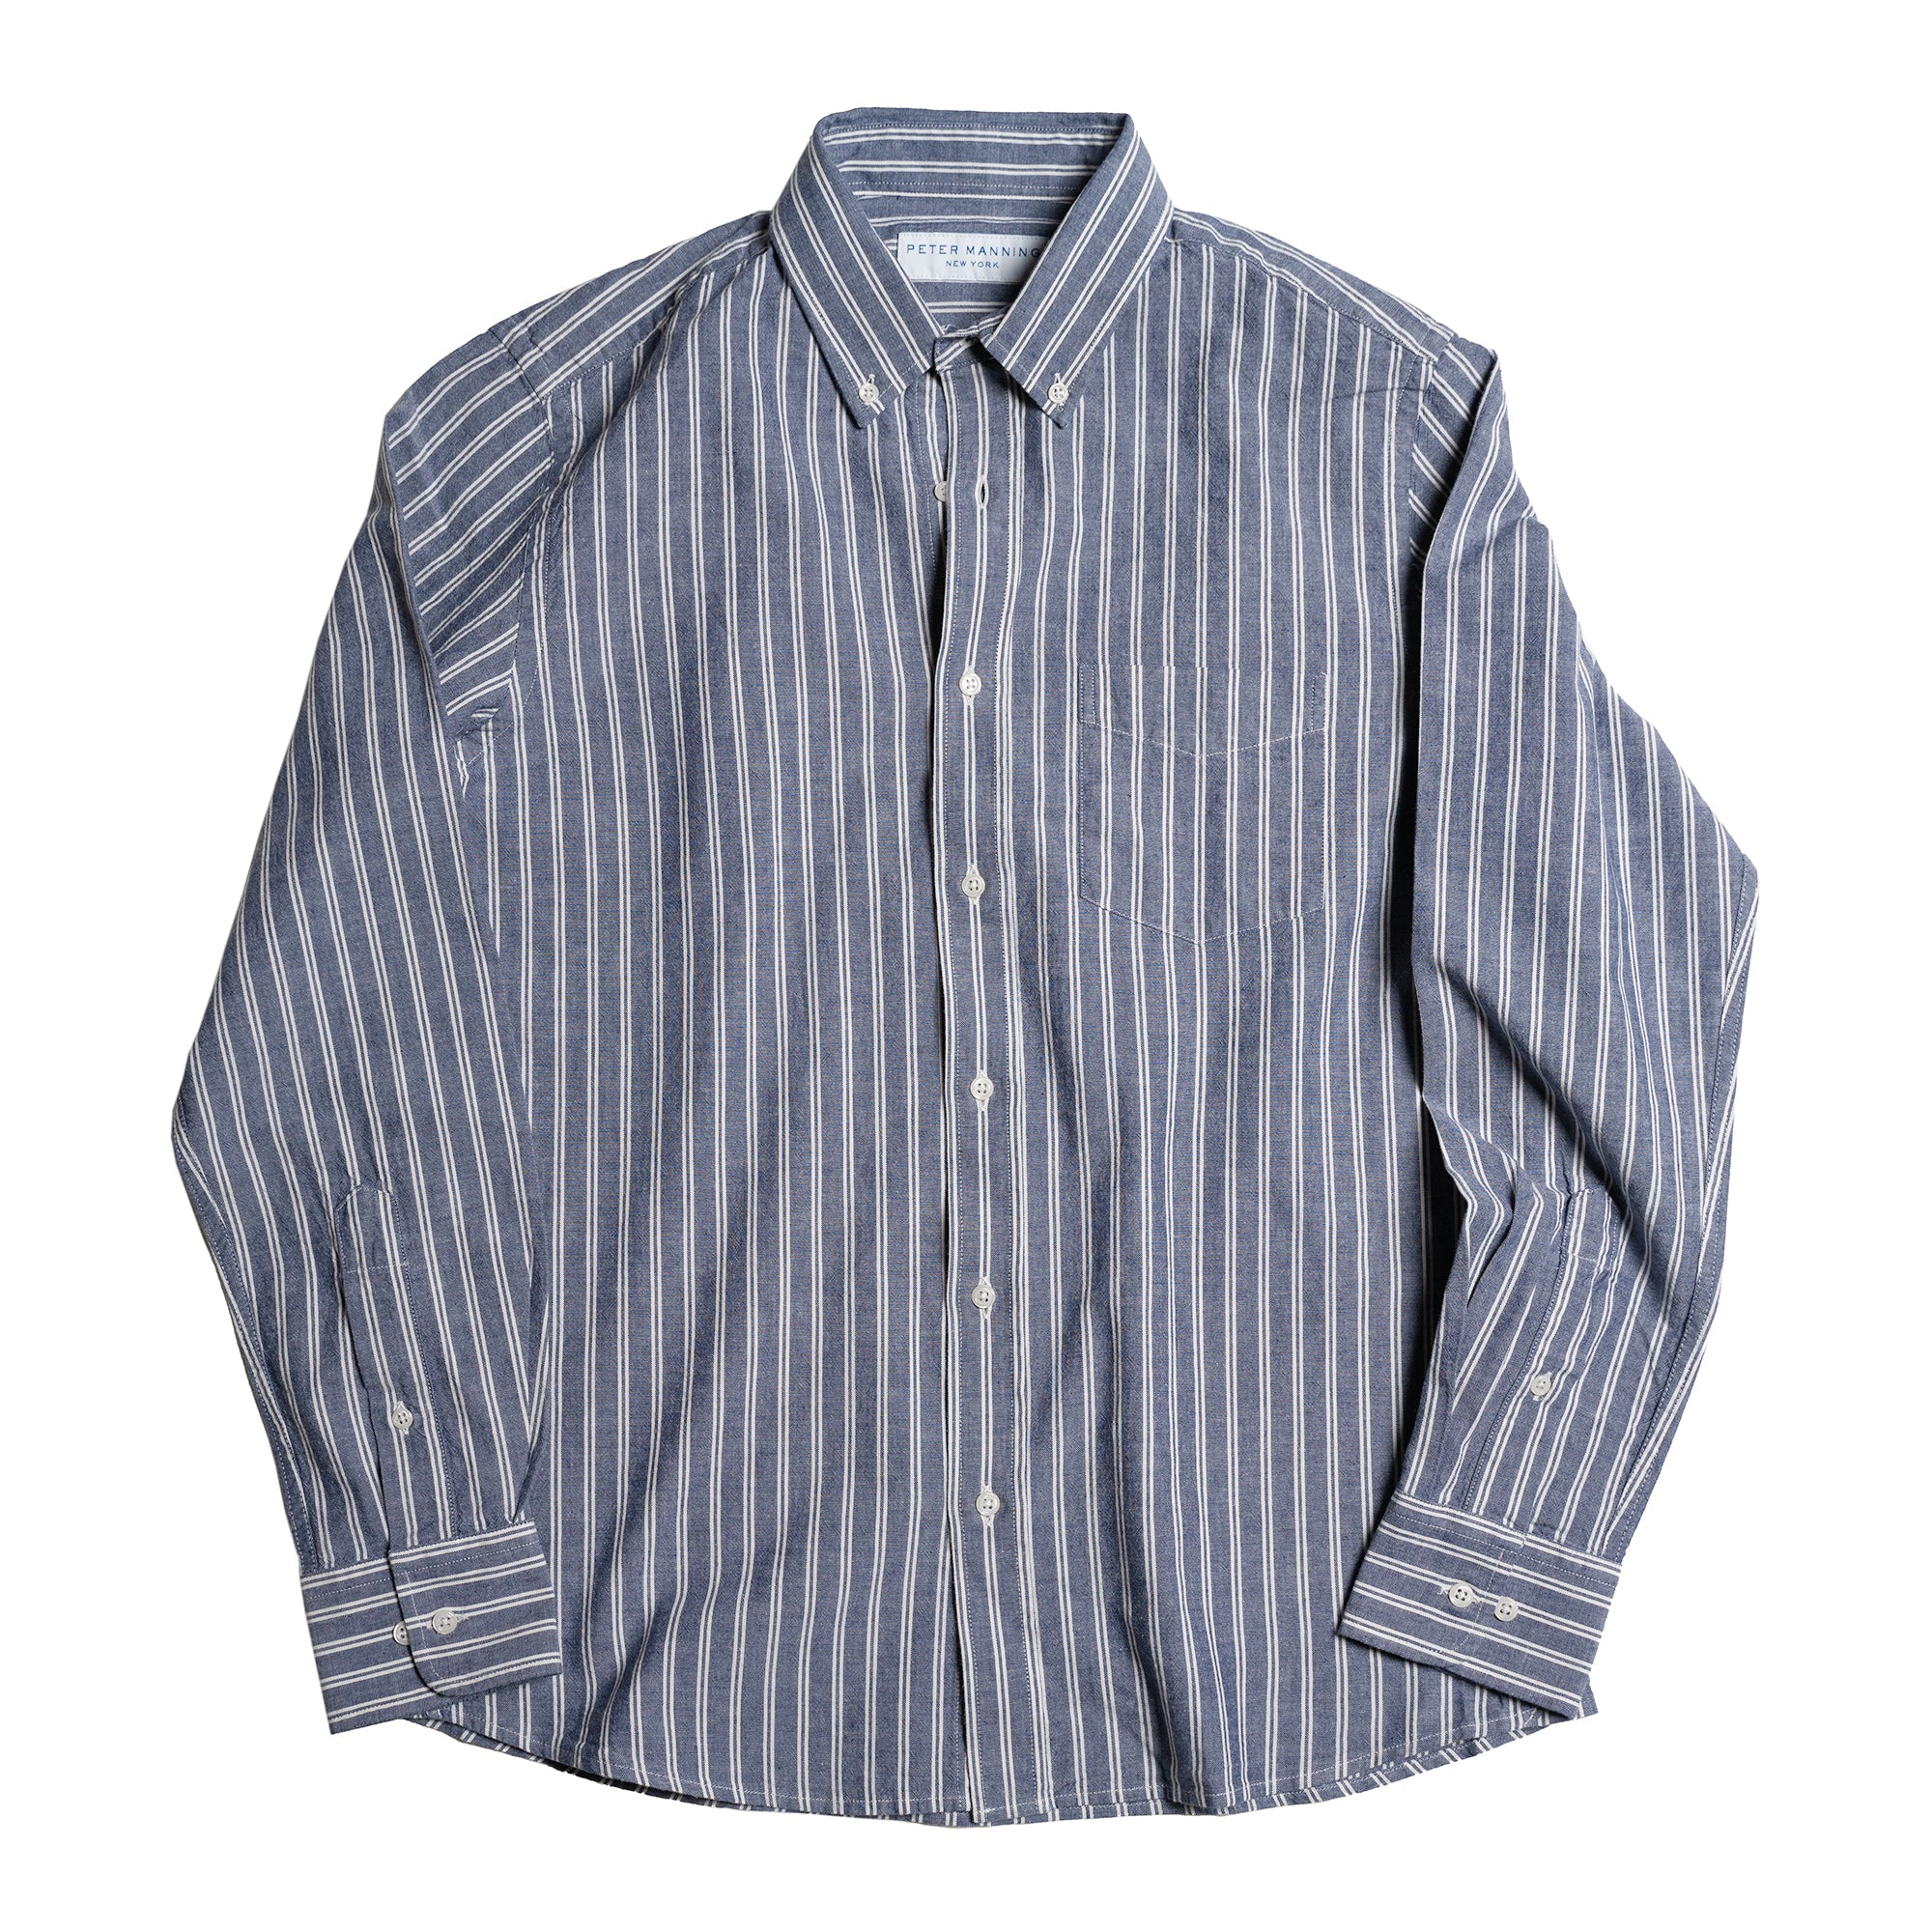 Brooklyn Chambray Shirt - Denim Stripe